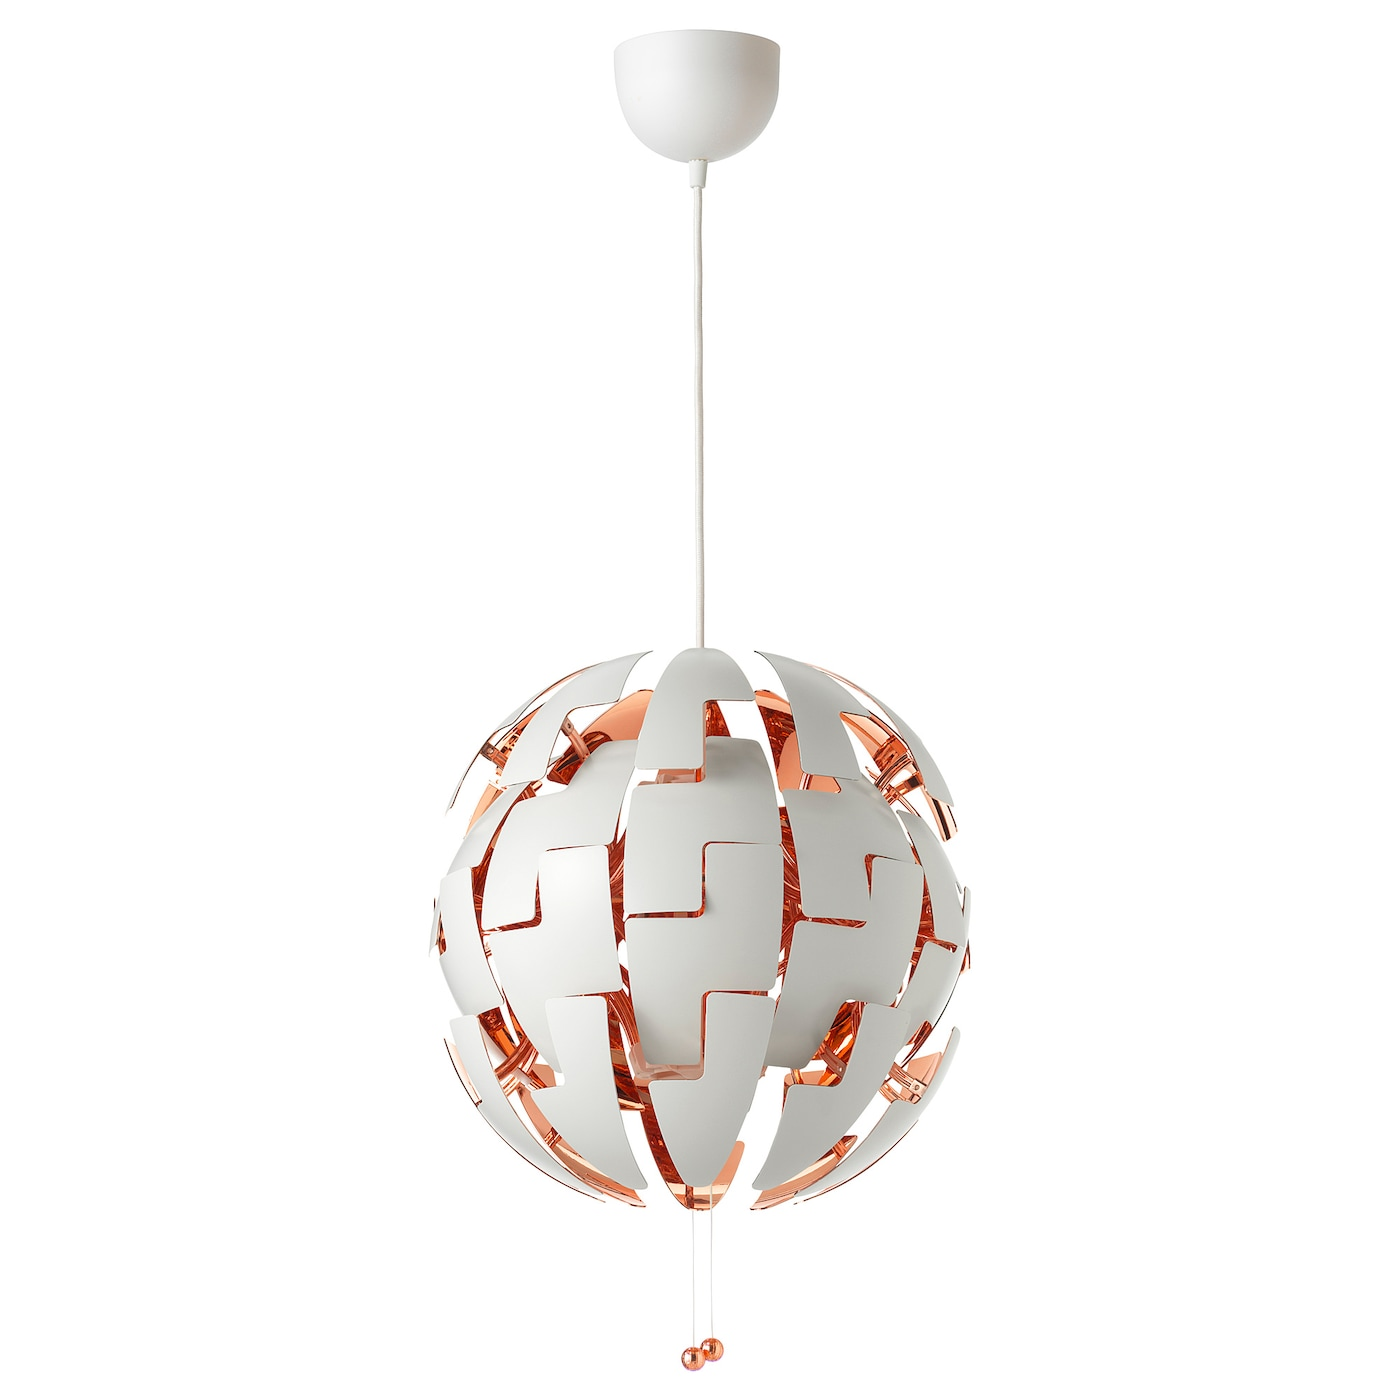 Lampadari A Pale Ikea.Ikea Ps 2014 Pendant Lamp White Copper Color 14 Ikea